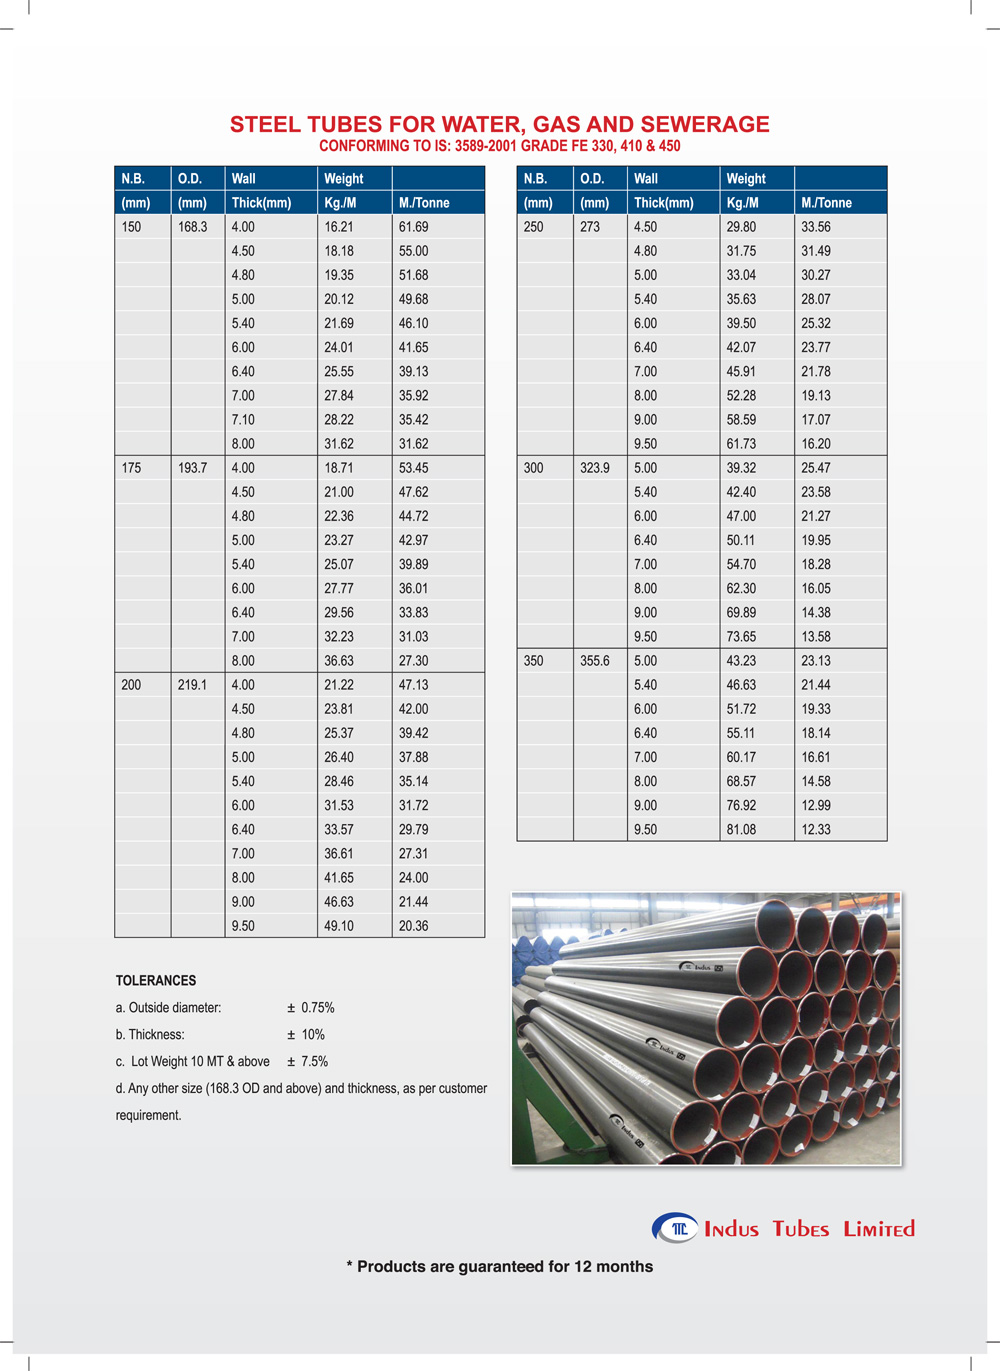 150 350g steel tubes for water sewerage gases purposes nvjuhfo Gallery